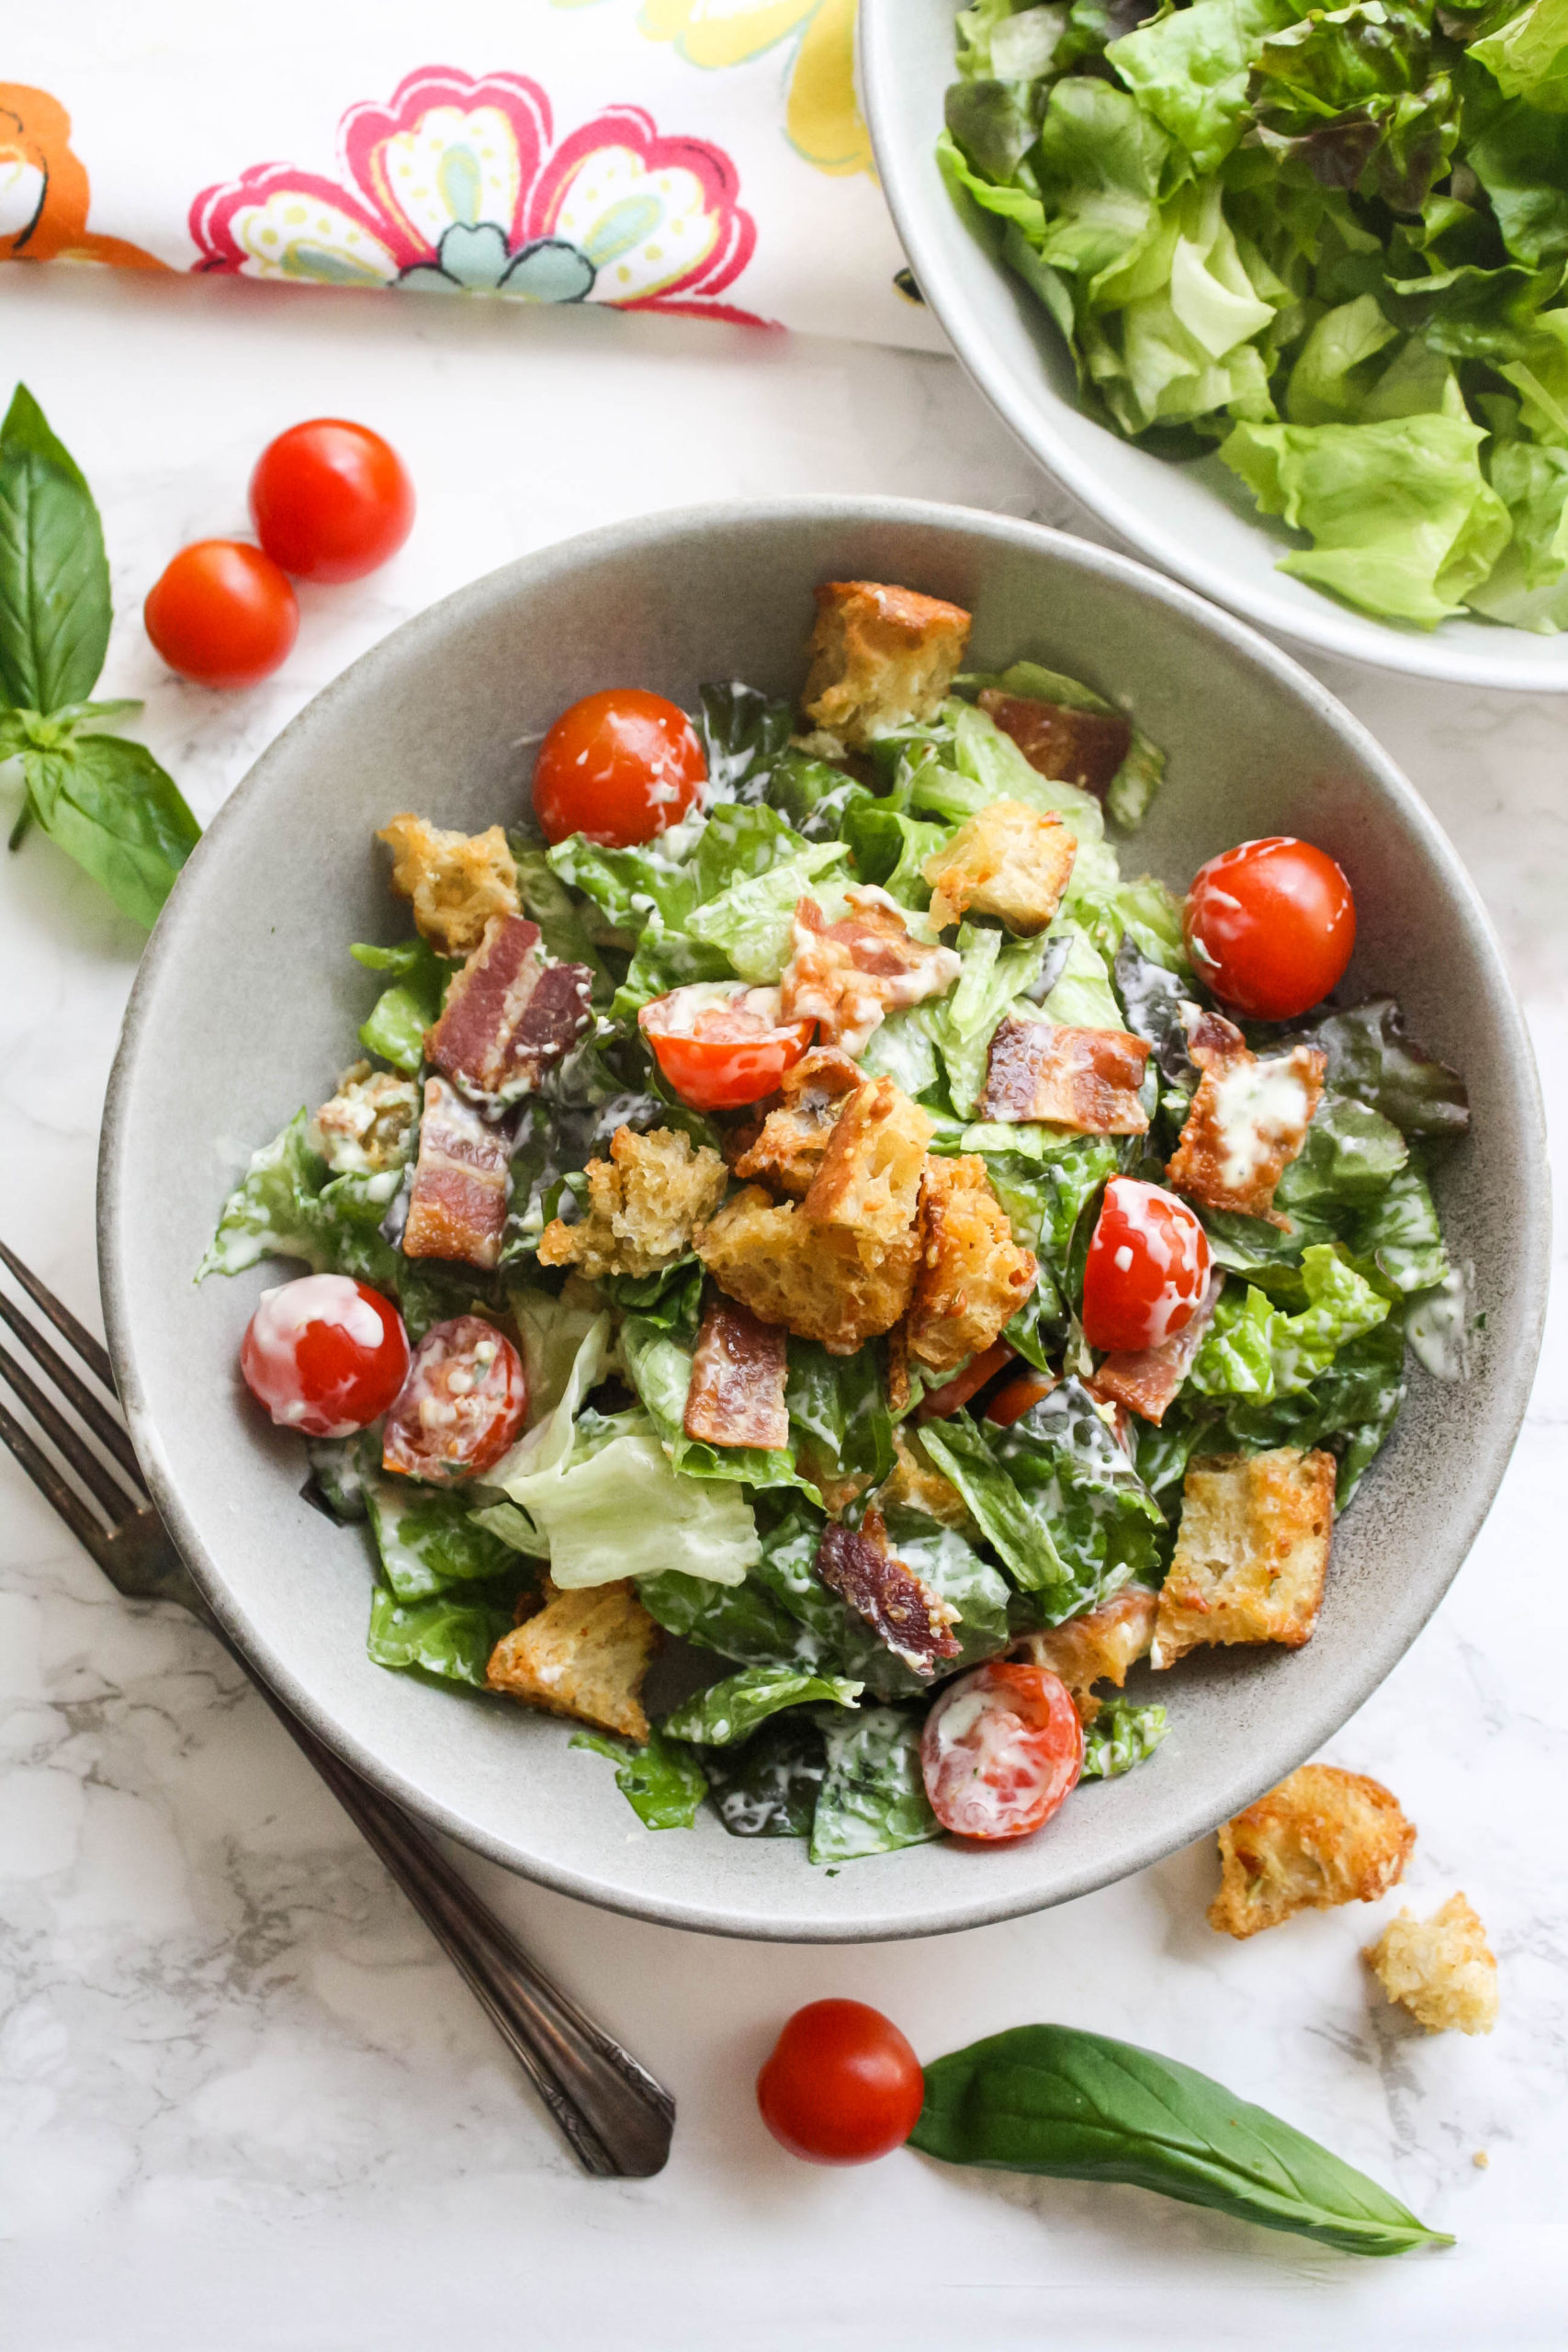 BLT Salad with Garlic-Basil Dressing is a delightful salad.